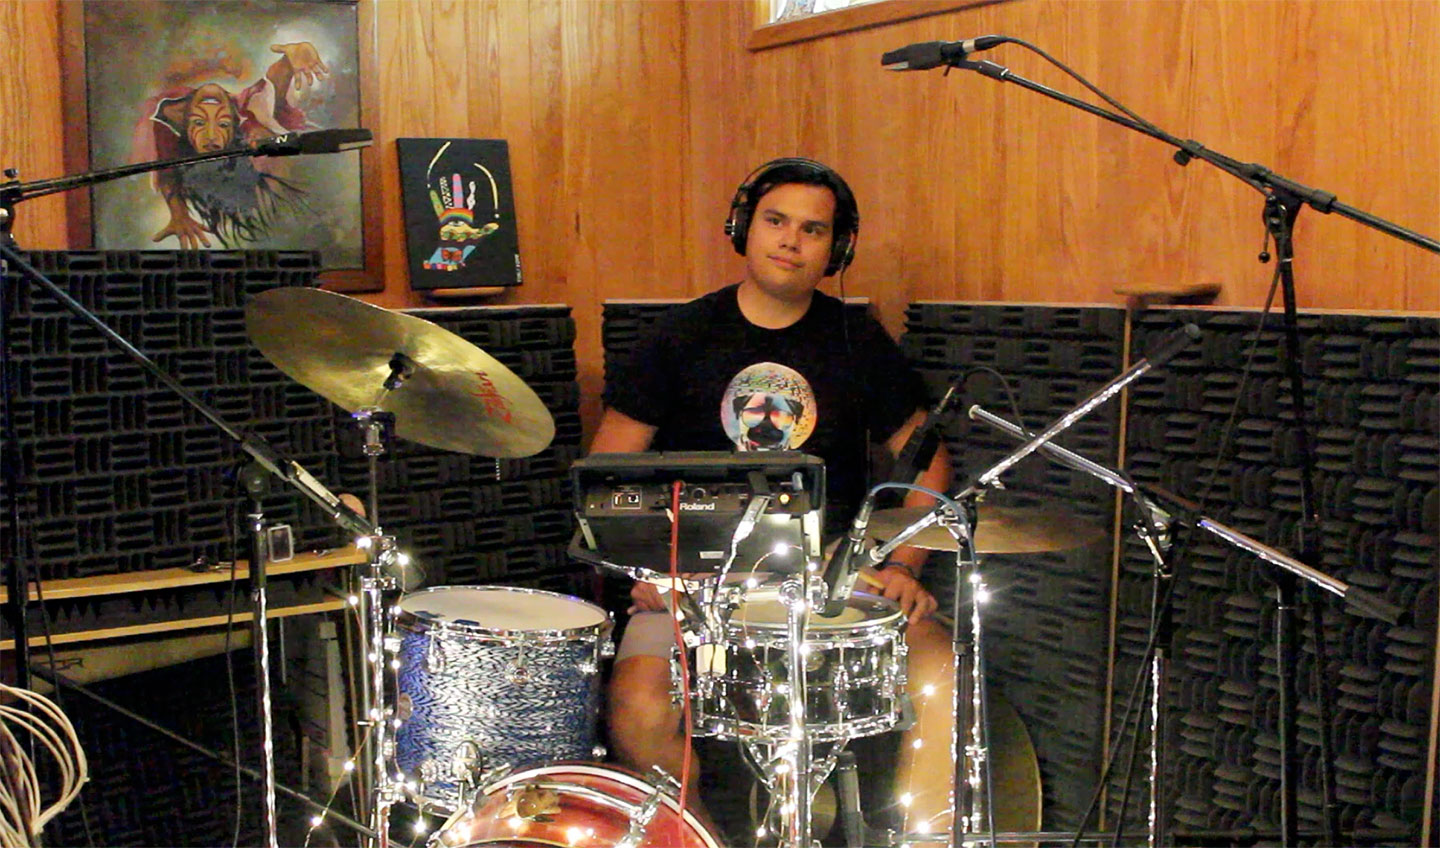 Stephen Avalos with House of Stairs recording at Phoenix Invincible Recording Studio image